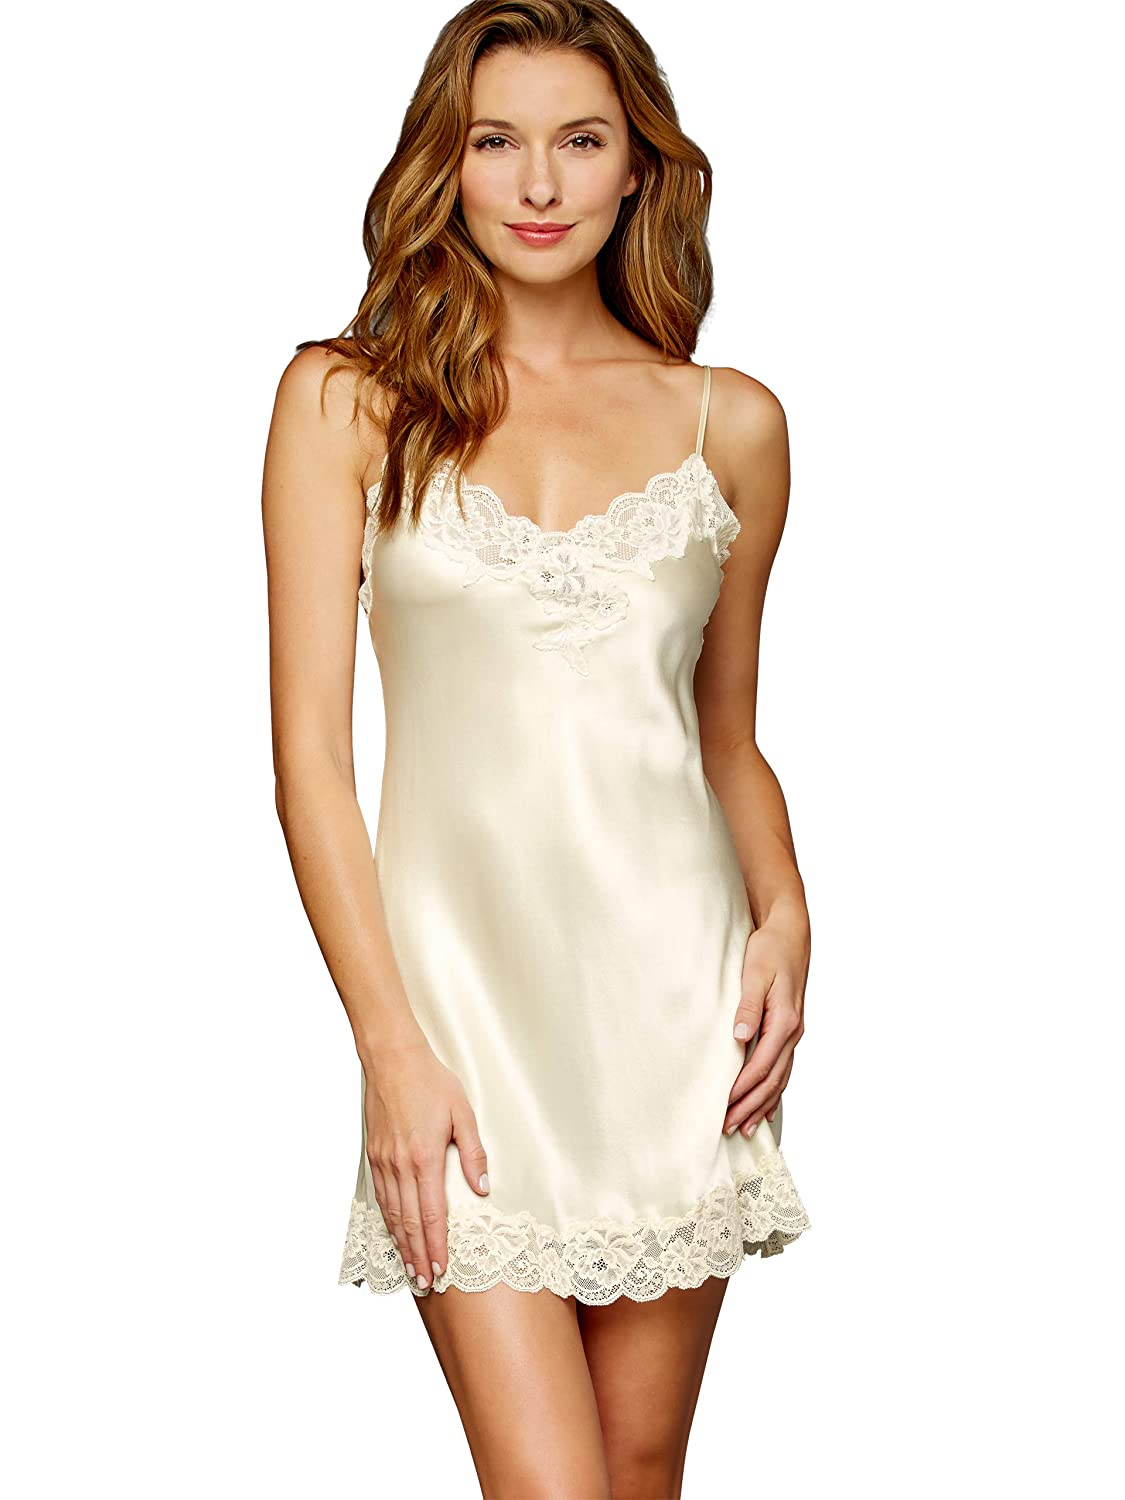 Le Tresor 20122 Flattering Fit Embroidered Lace Julianna Rae Womens Silk Chemise